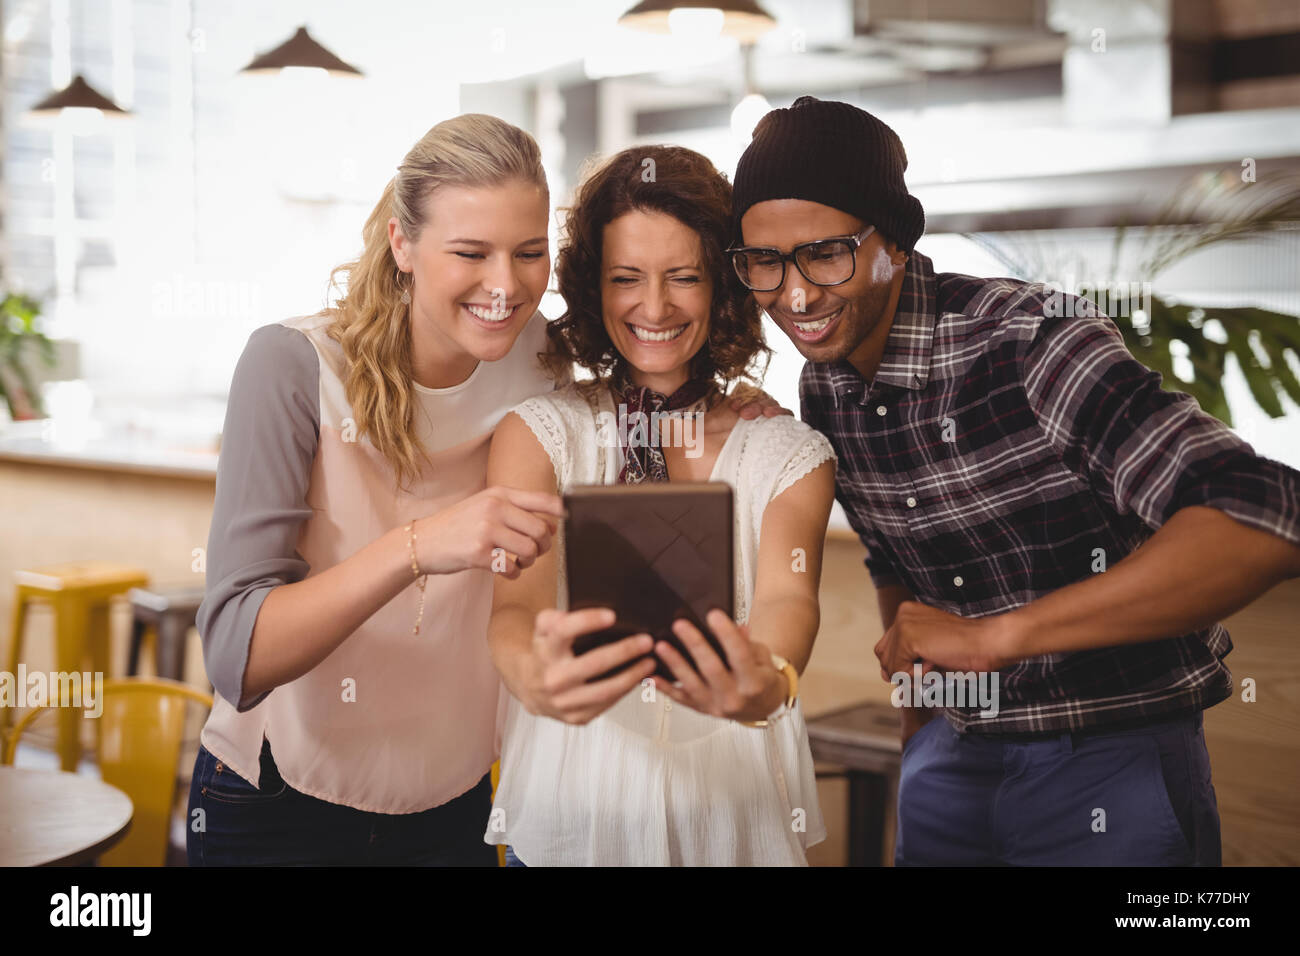 Cheerful multi ethnic friends de selfies digital tablet while standing at coffee shop Photo Stock